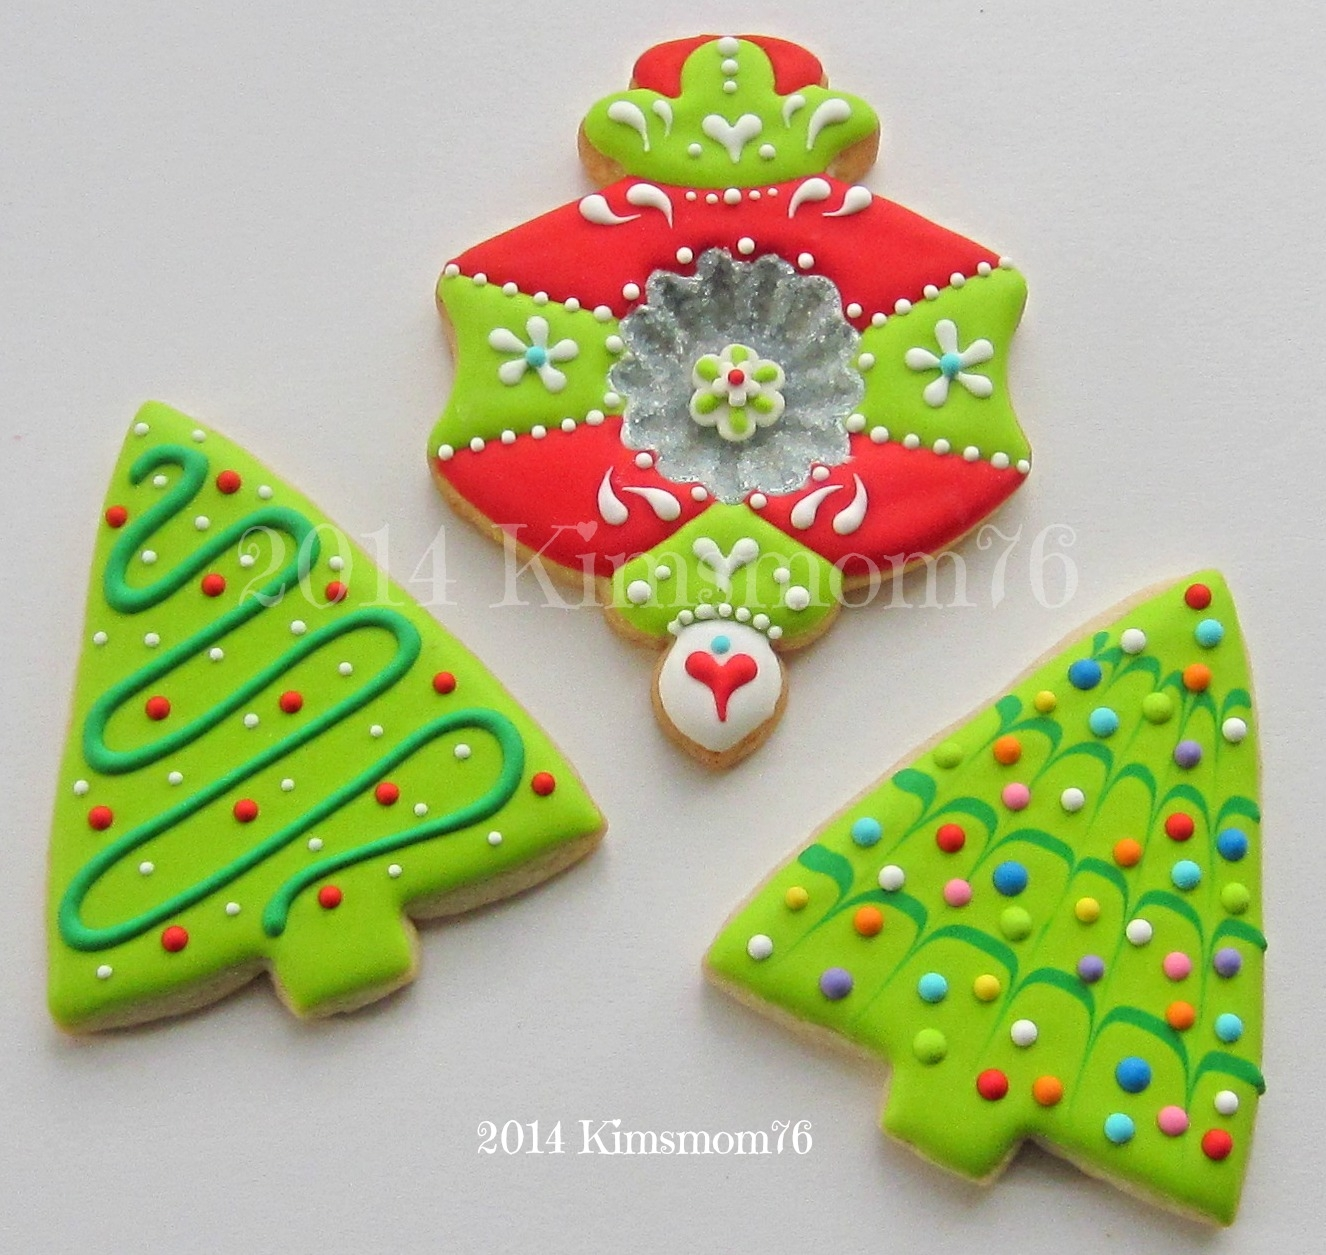 Ornament Cookie And Simple Trees.   Simple trees and an ornament cookie with a decorative indentation. NFSC and RI.